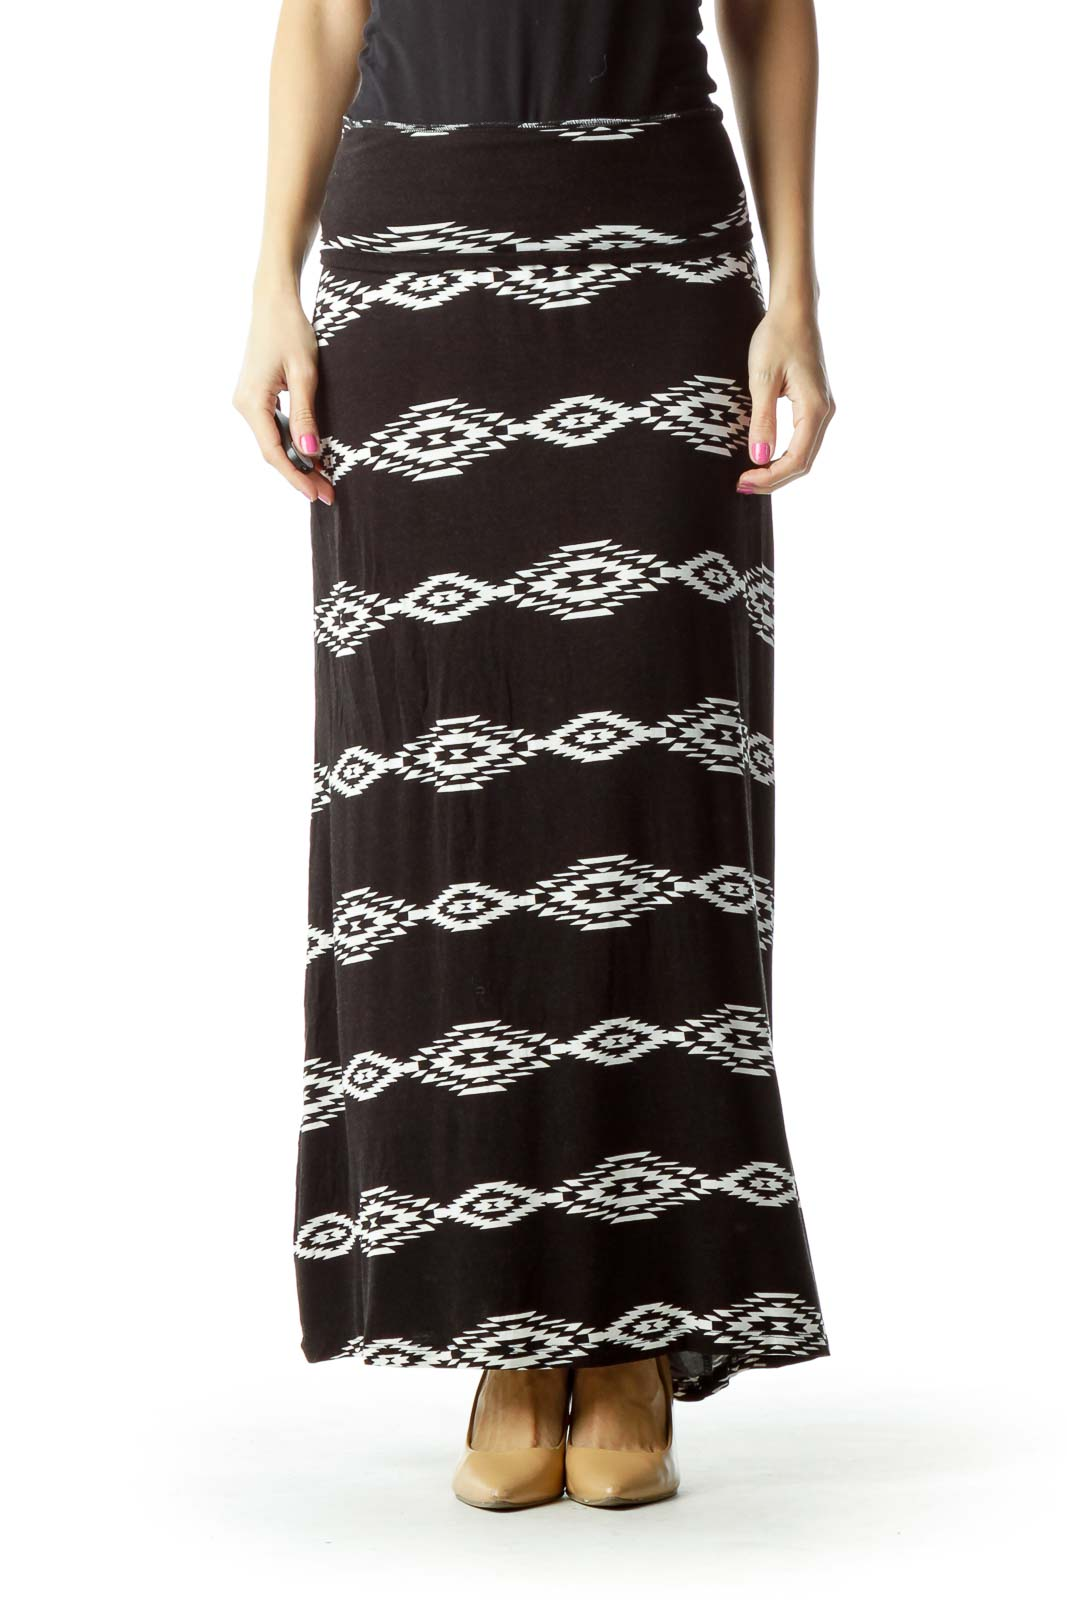 Outfits With Black And White Maxi Skirt | Huston Fislar Photography